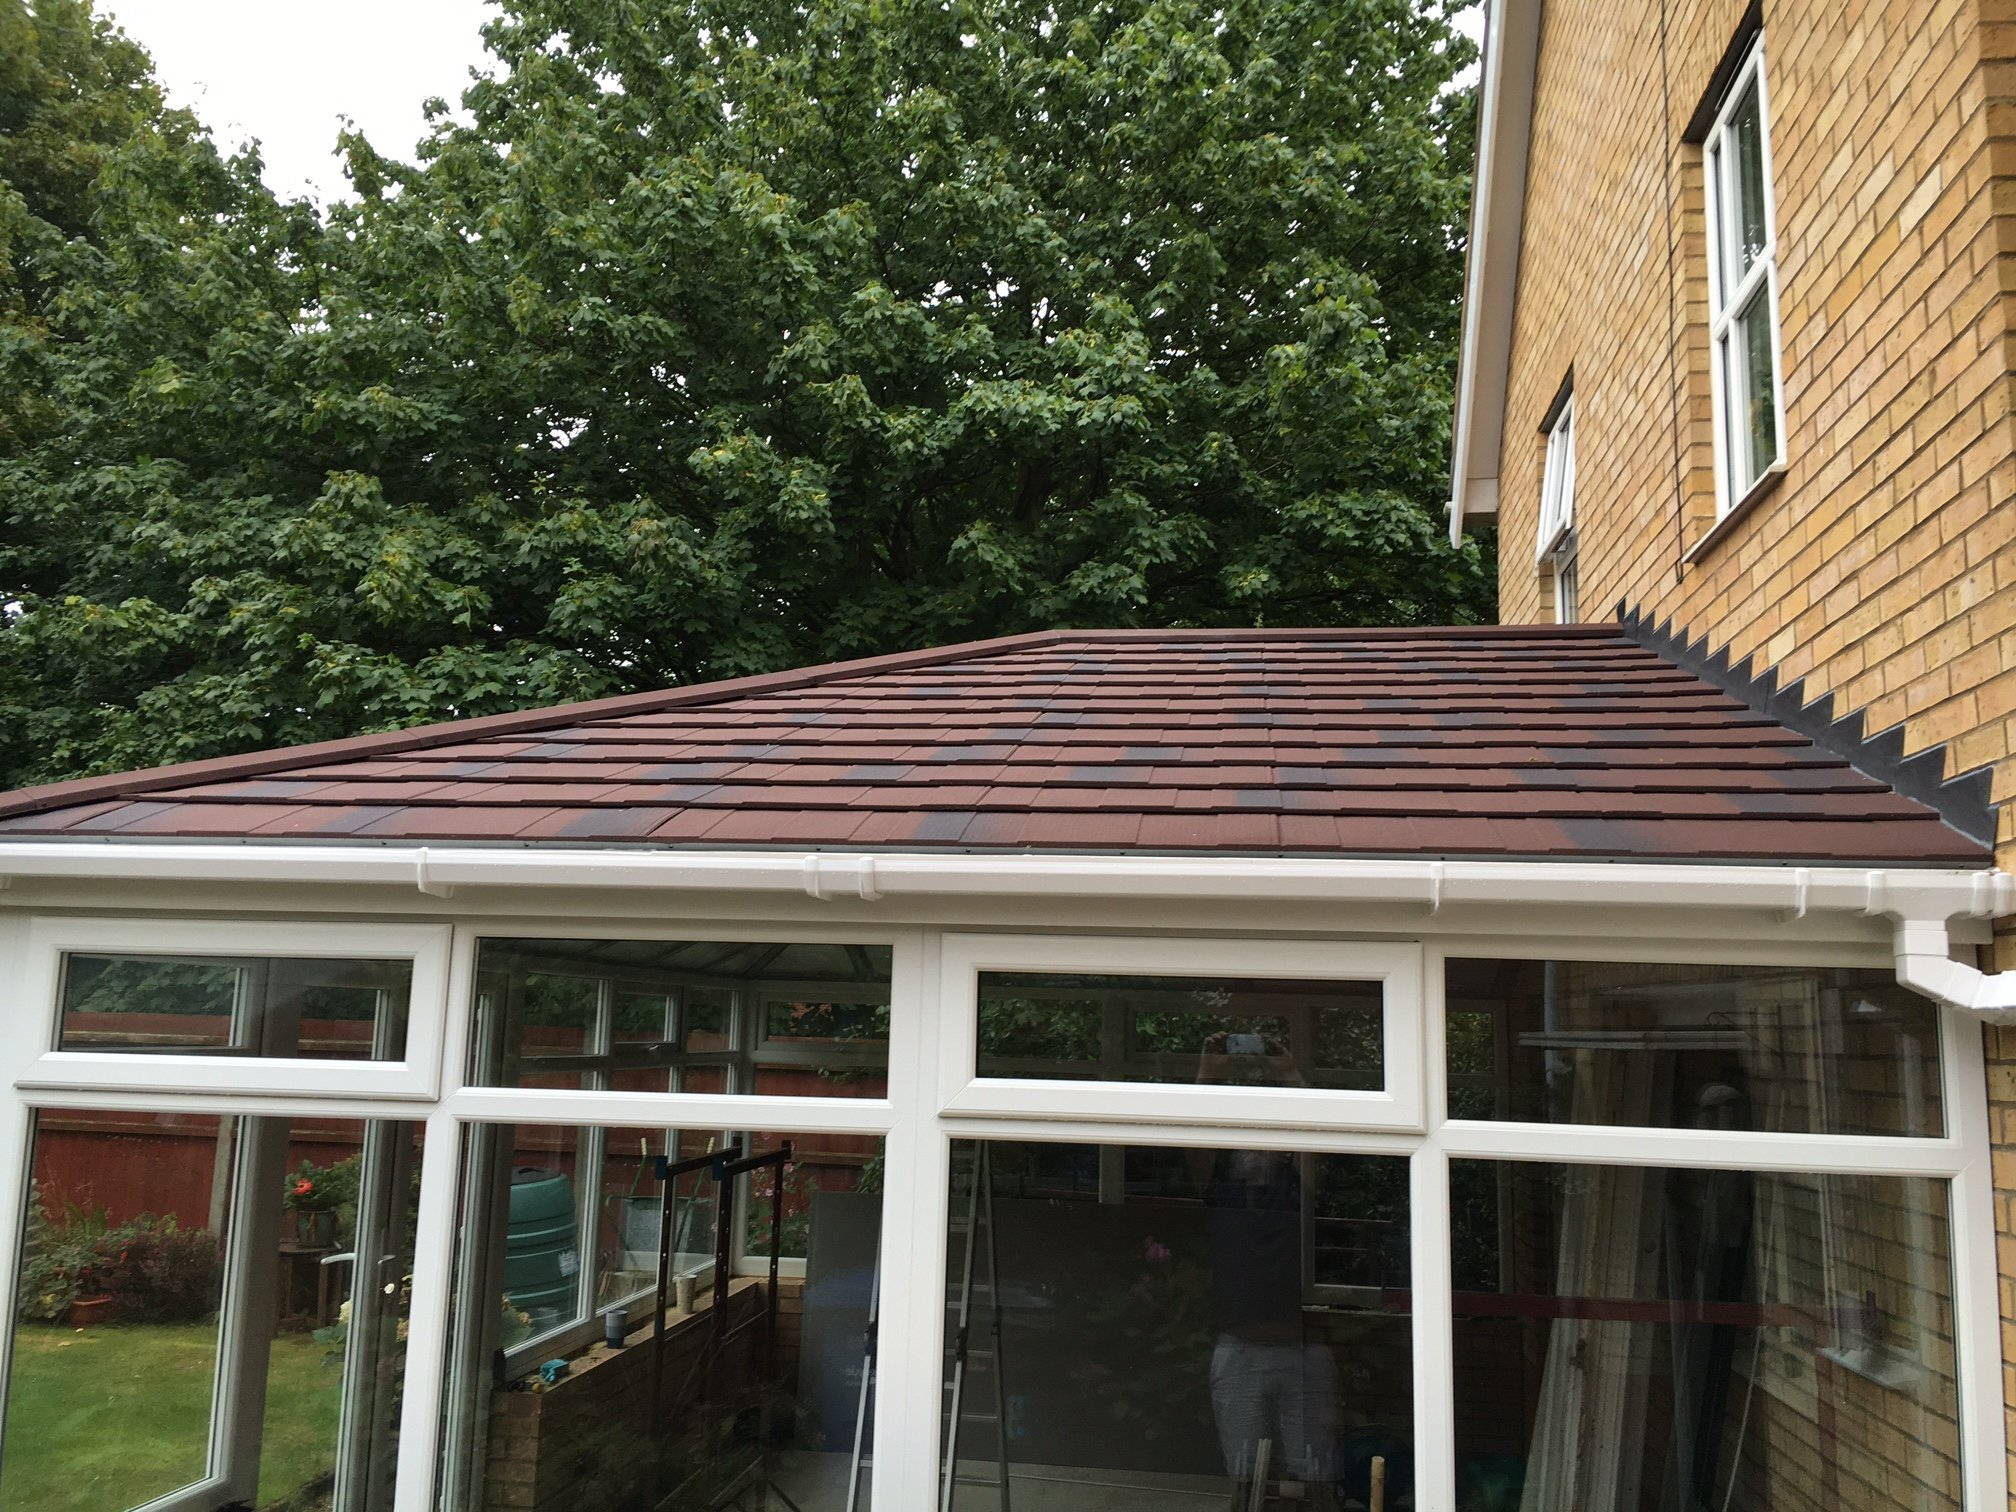 leka_warm_conservatory_roof_replacement_tapco_slate__side_composite_door_sales_bolton_bury